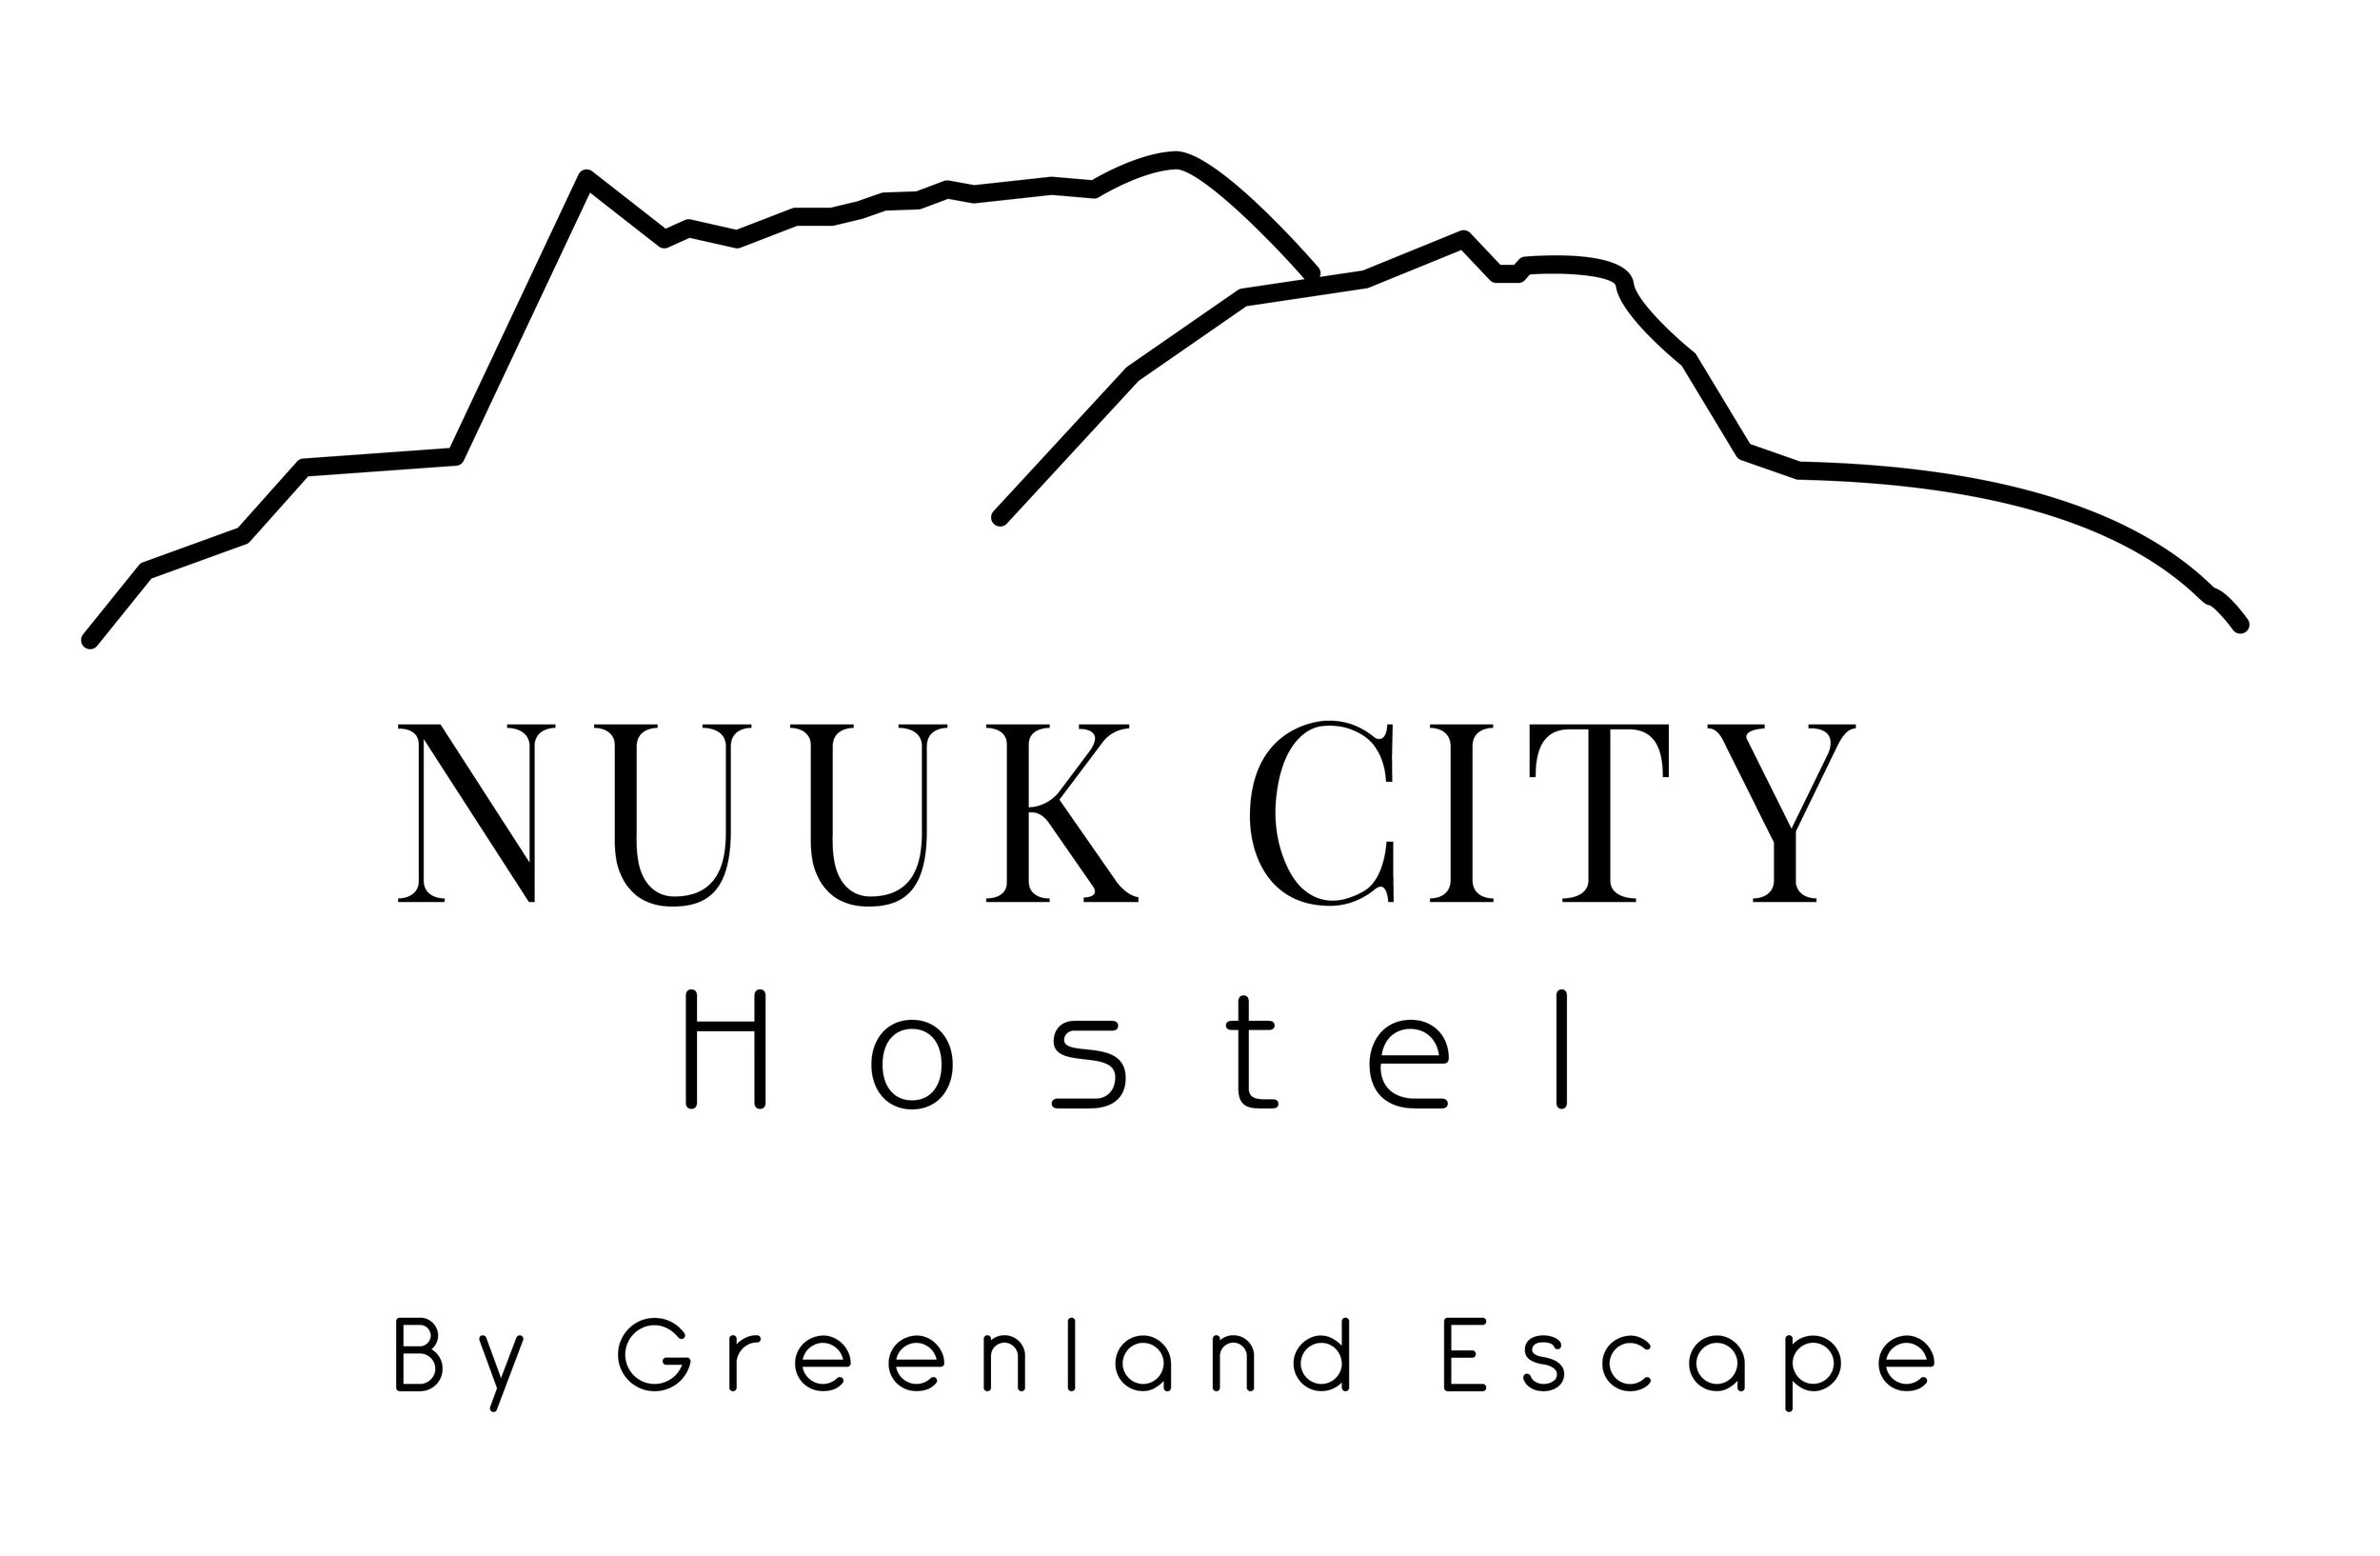 Nuuk city hostel cropped.jpg